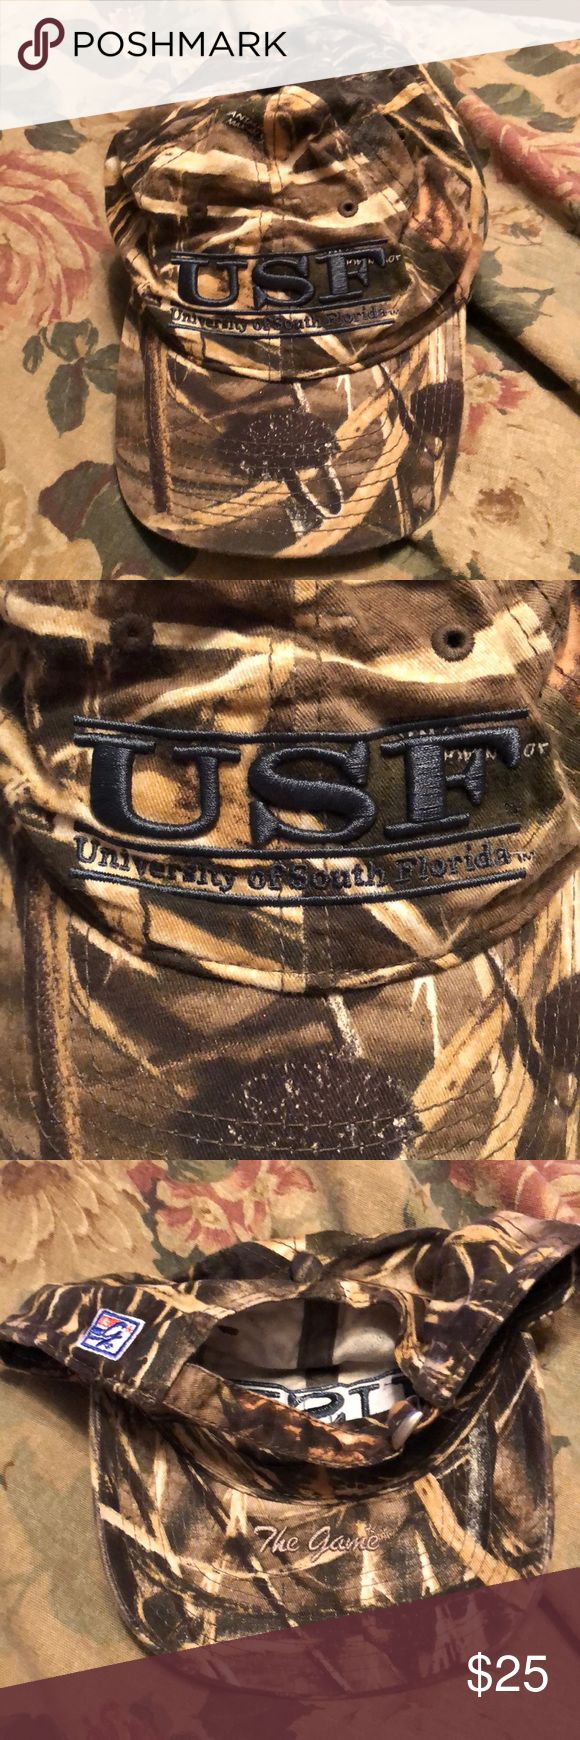 The Game USF camo hat. Great condition! The Game USF camo hat. Great condition. Like new condition, worn once! Adjustable back for different sizes! The Game Accessories Hats